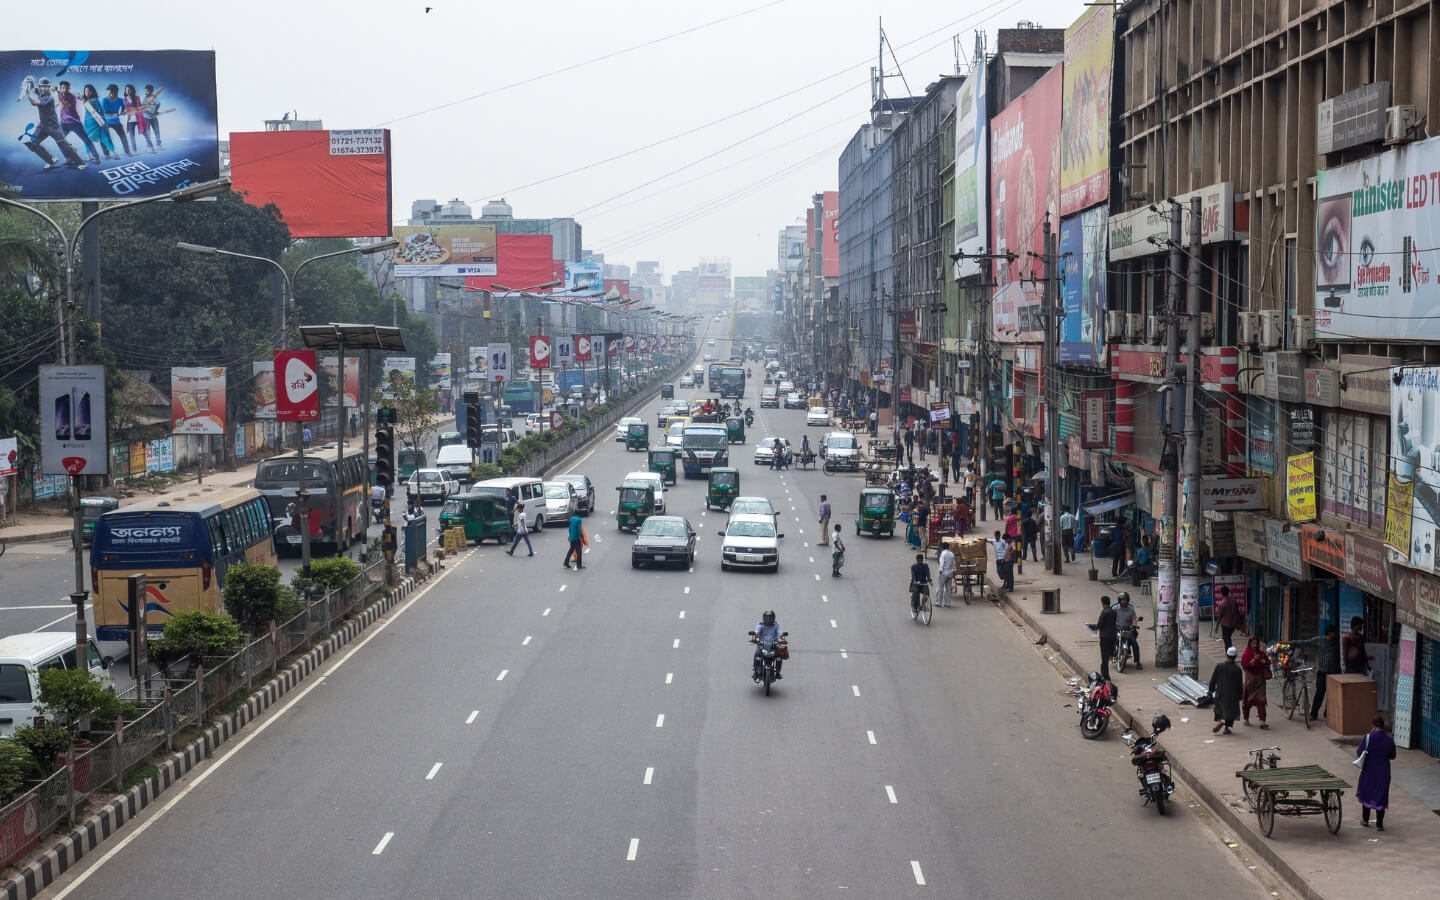 Mohakhali is one of the unlikely commercial areas in Dhaka